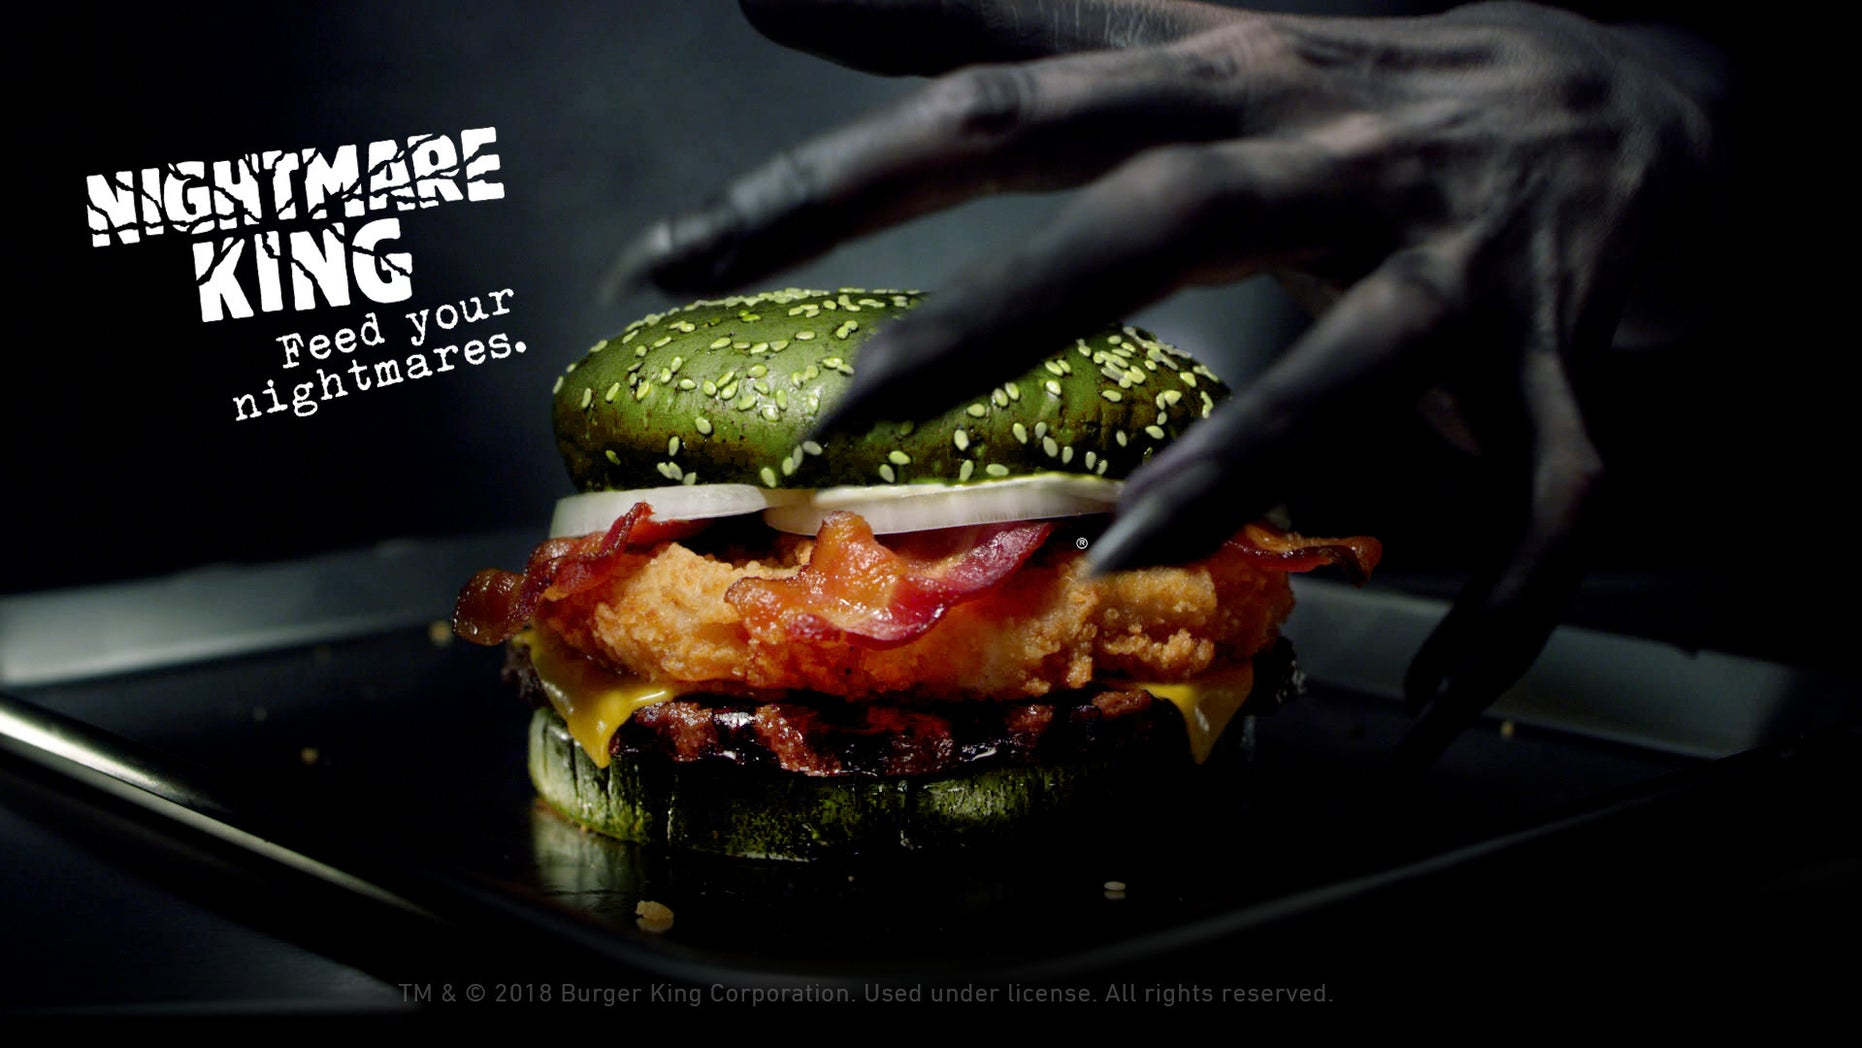 Feed your nightmares: BK offers Halloween themed burger